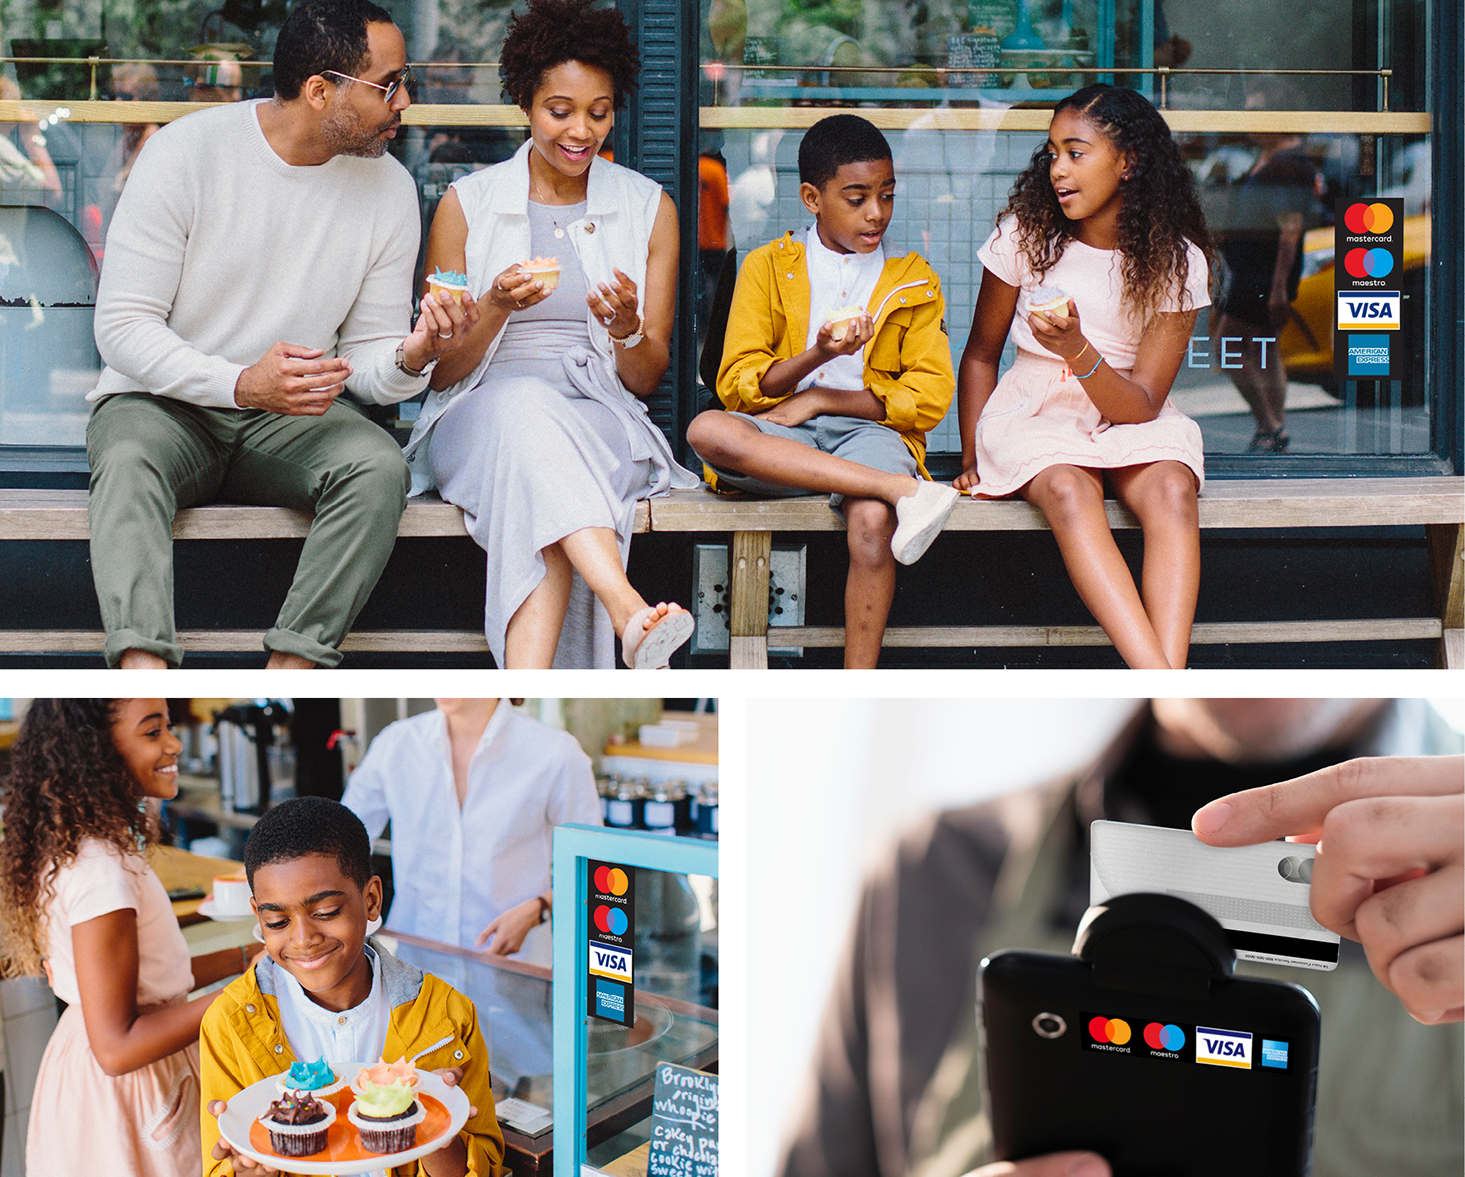 Images of using a Mastercard decal on a merchant window and payment terminal